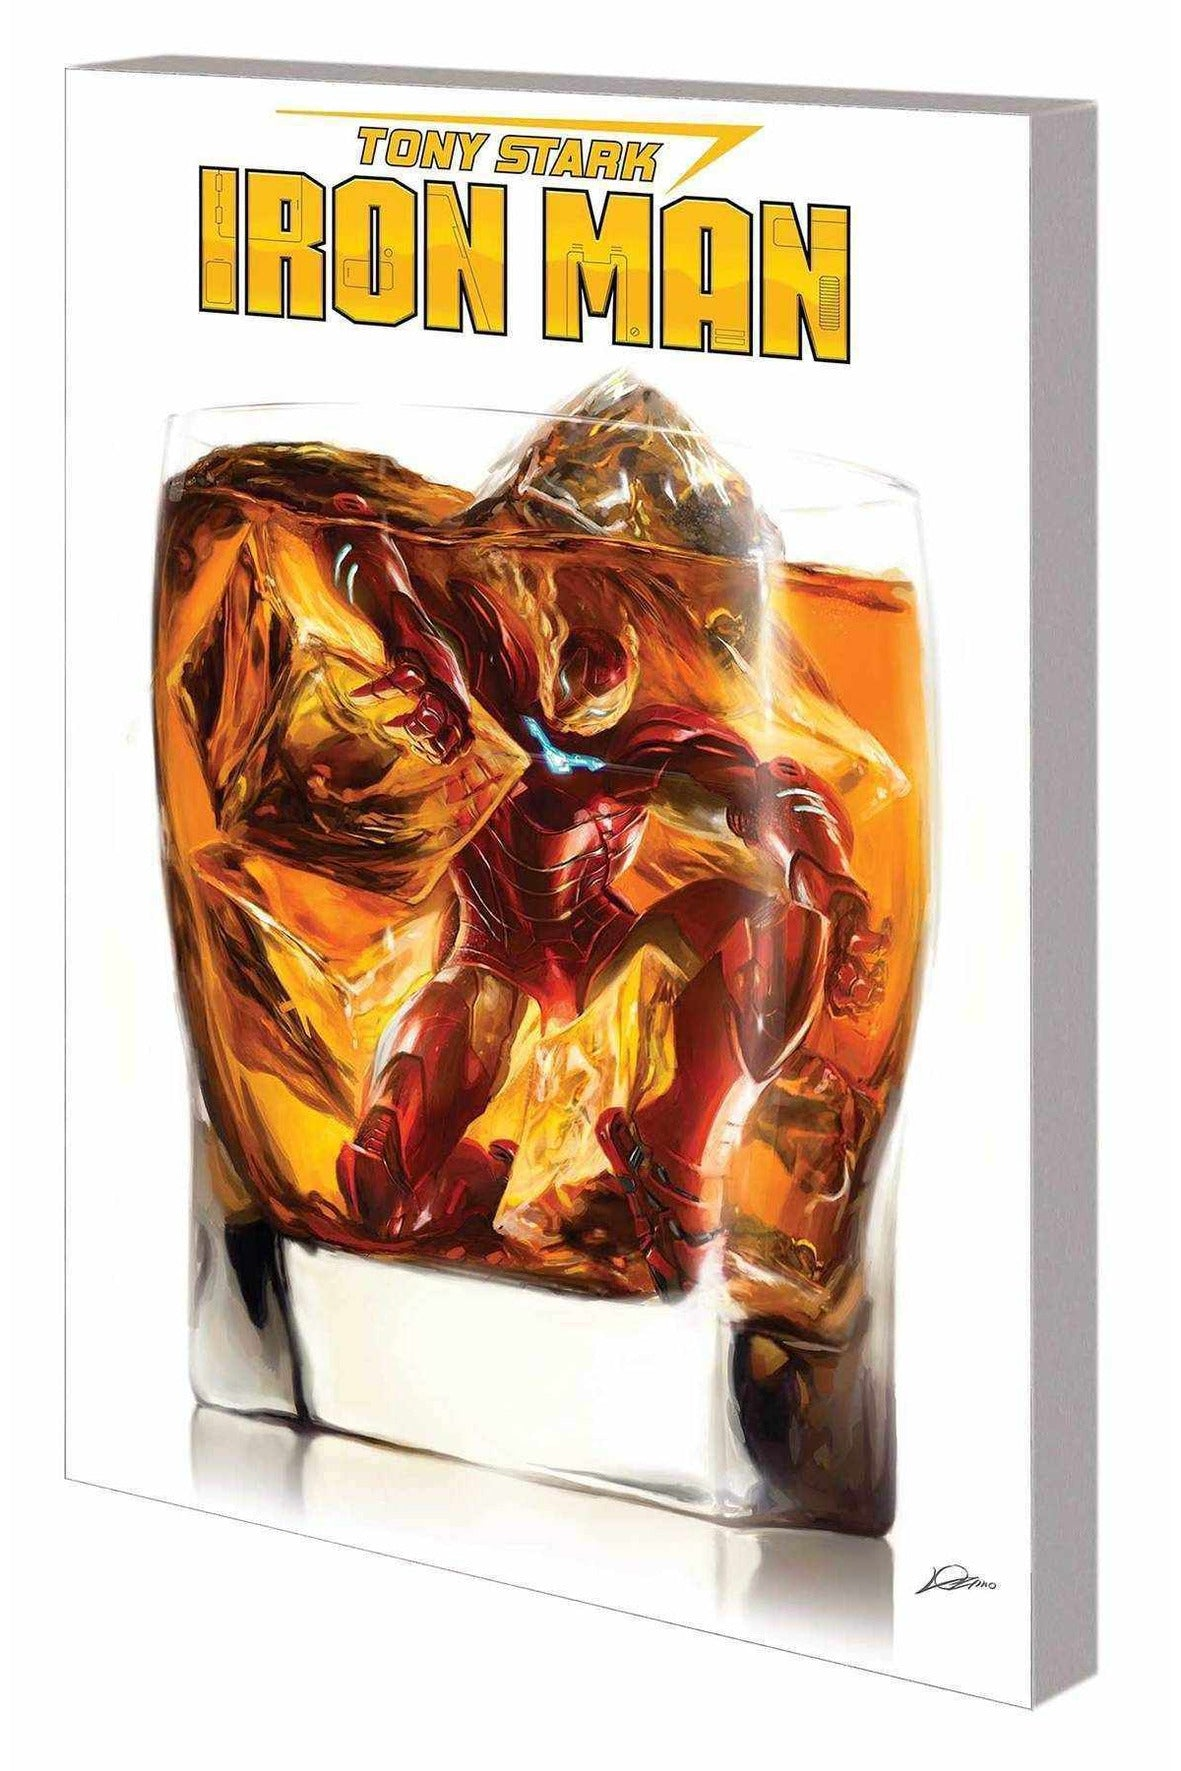 tony-stark-iron-man-vol-2-stark-realities-diamond-9781302912734-thegamersden.com